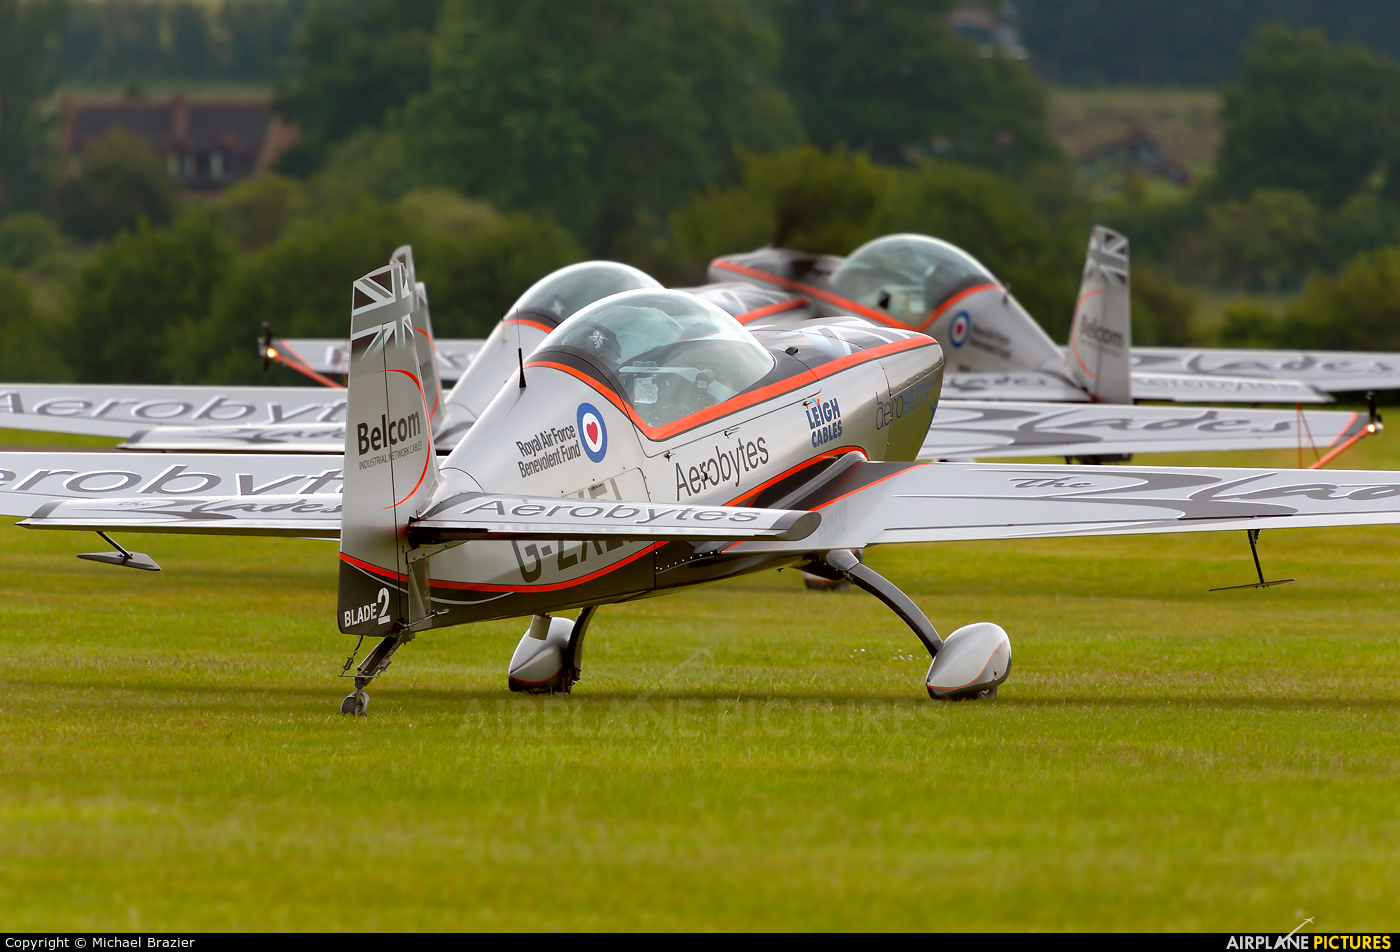 """2 Excel Aviation """"The Blades Aerobatic Team&quo G-ZXEL aircraft at Cosford"""